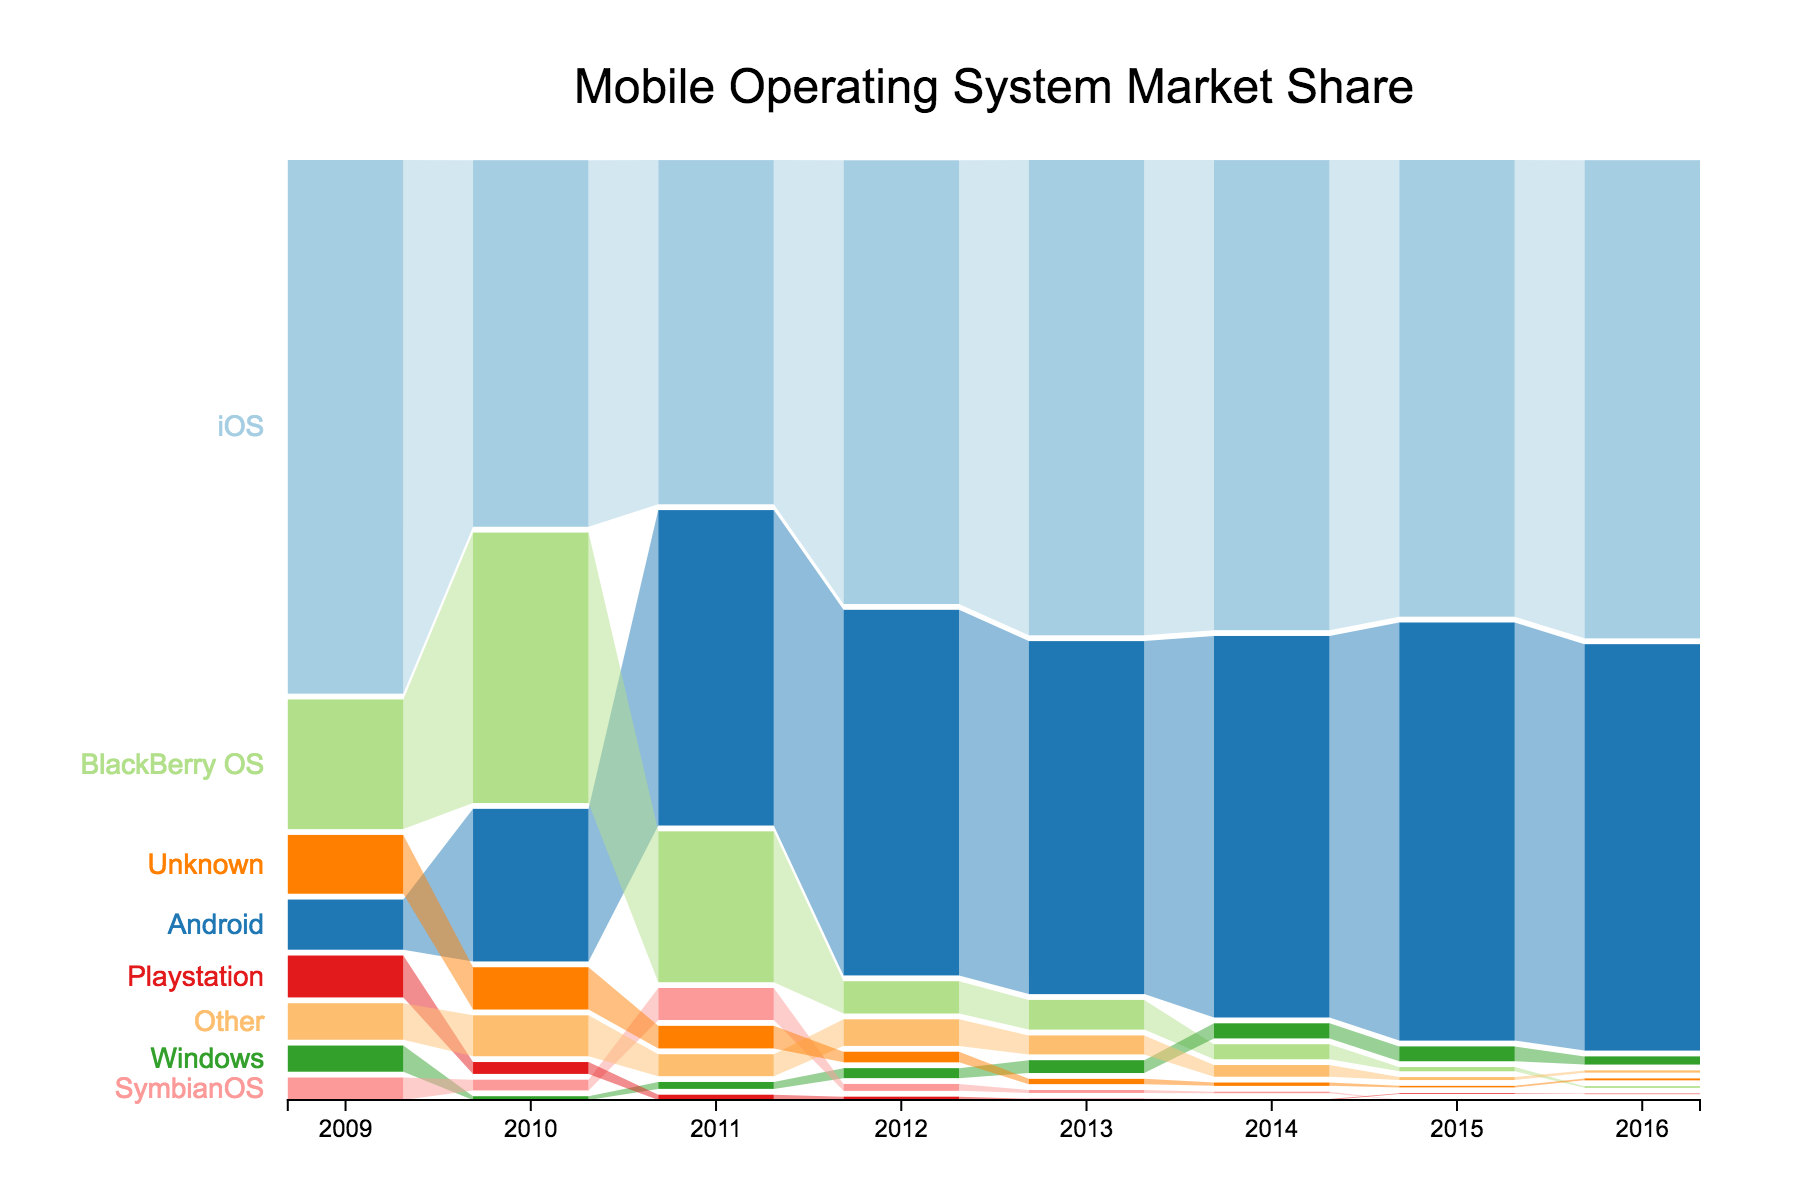 Market share of mobile operating systems